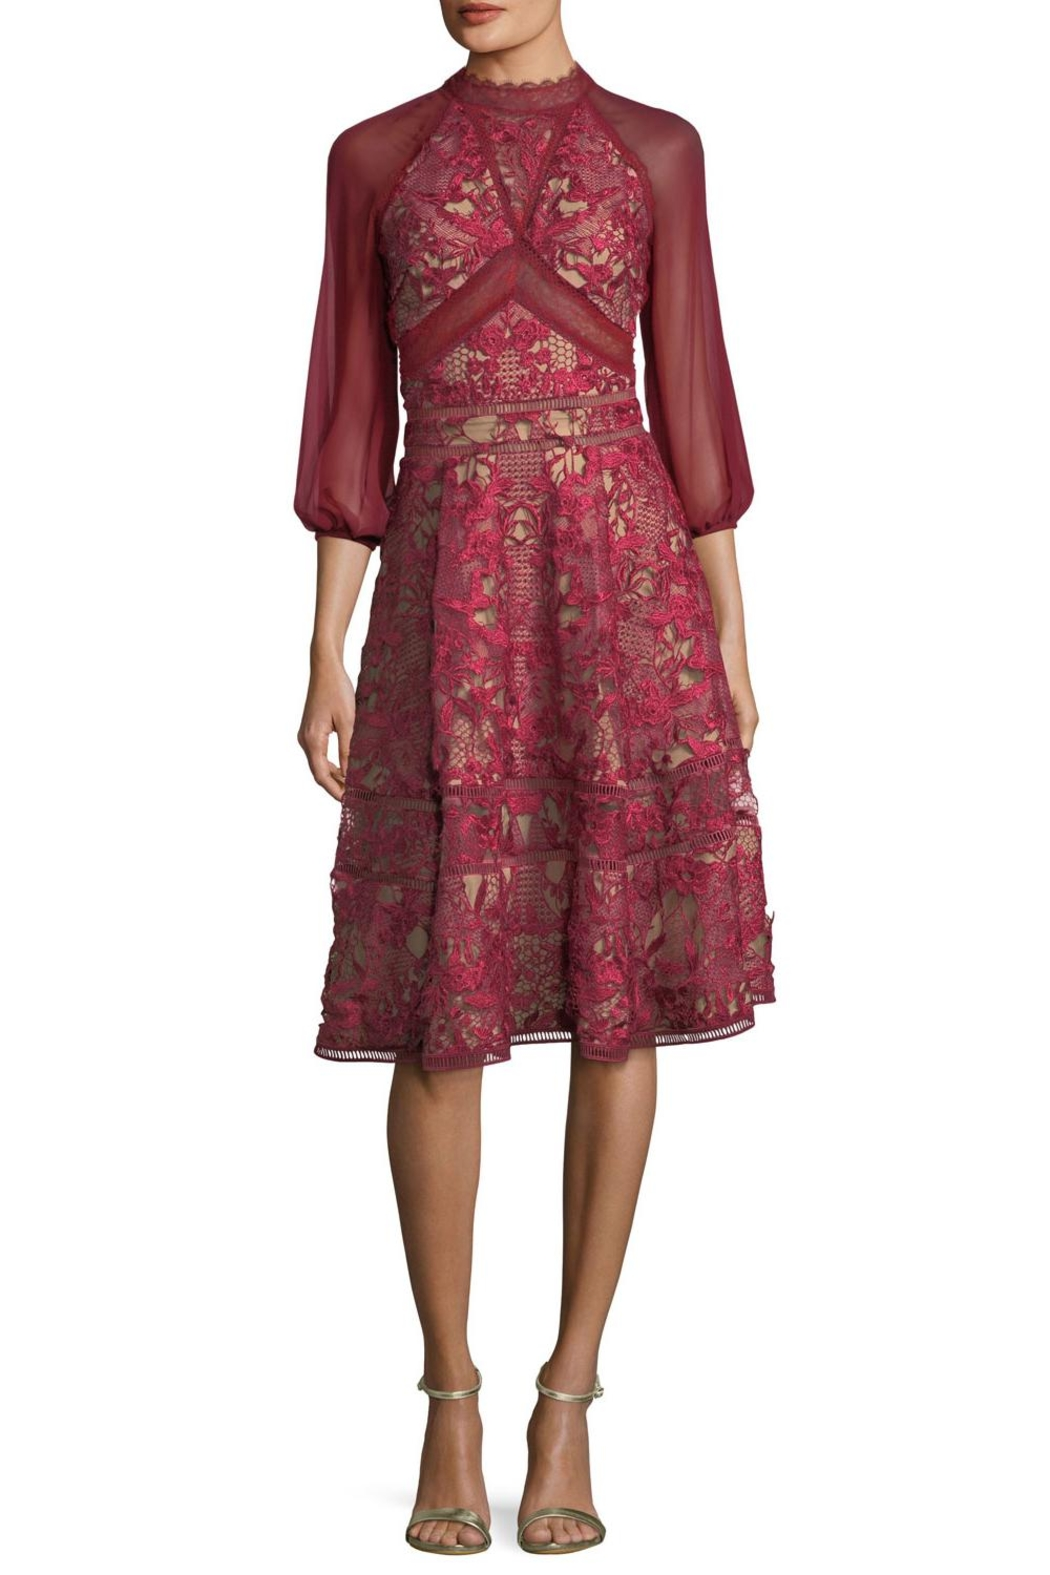 Notte by Marchesa Red Cocktail Dress - Main Image